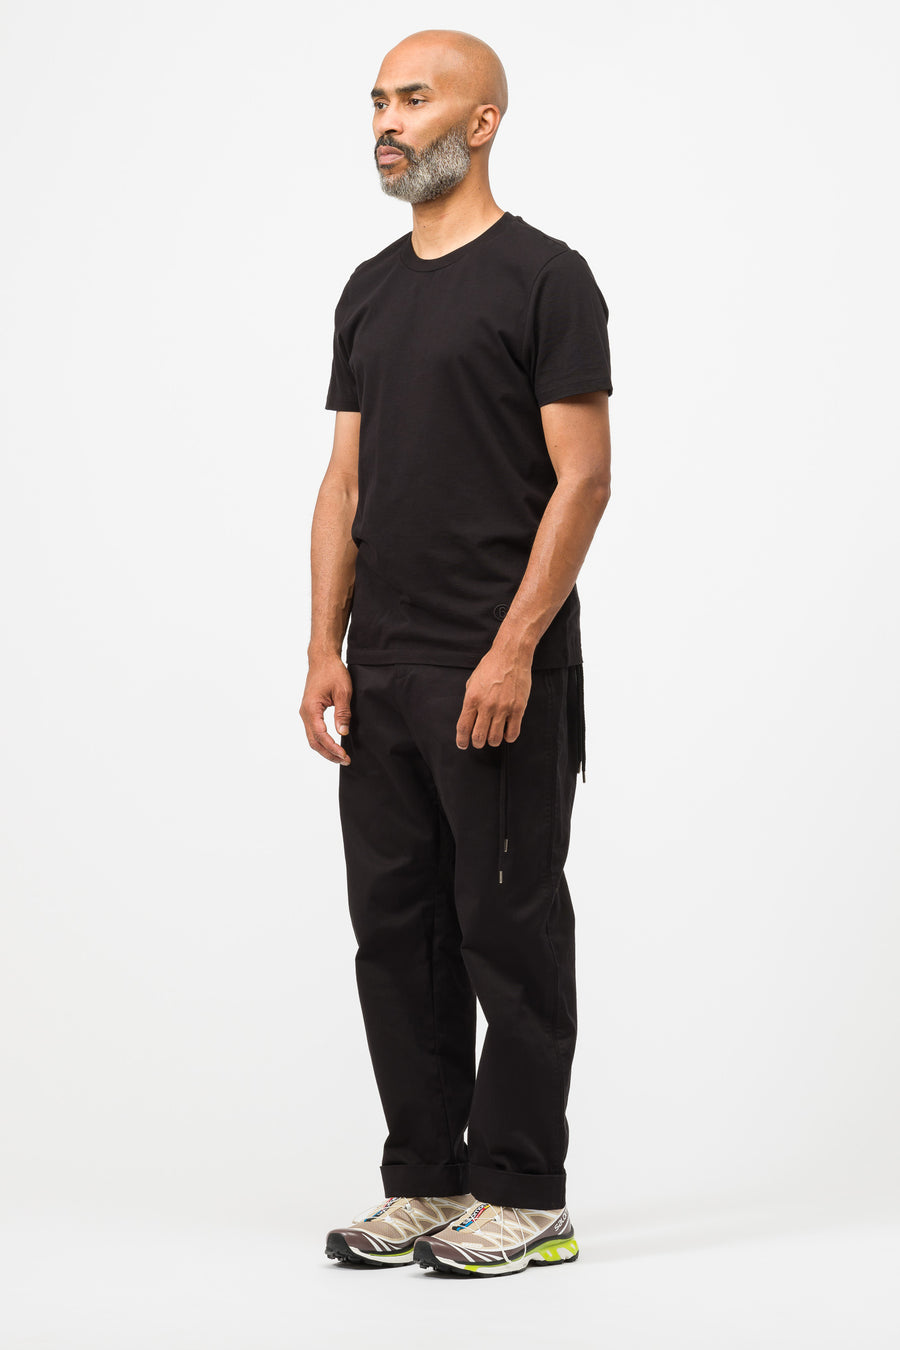 Craig Green Laced Uniform Trouser in Black - Notre